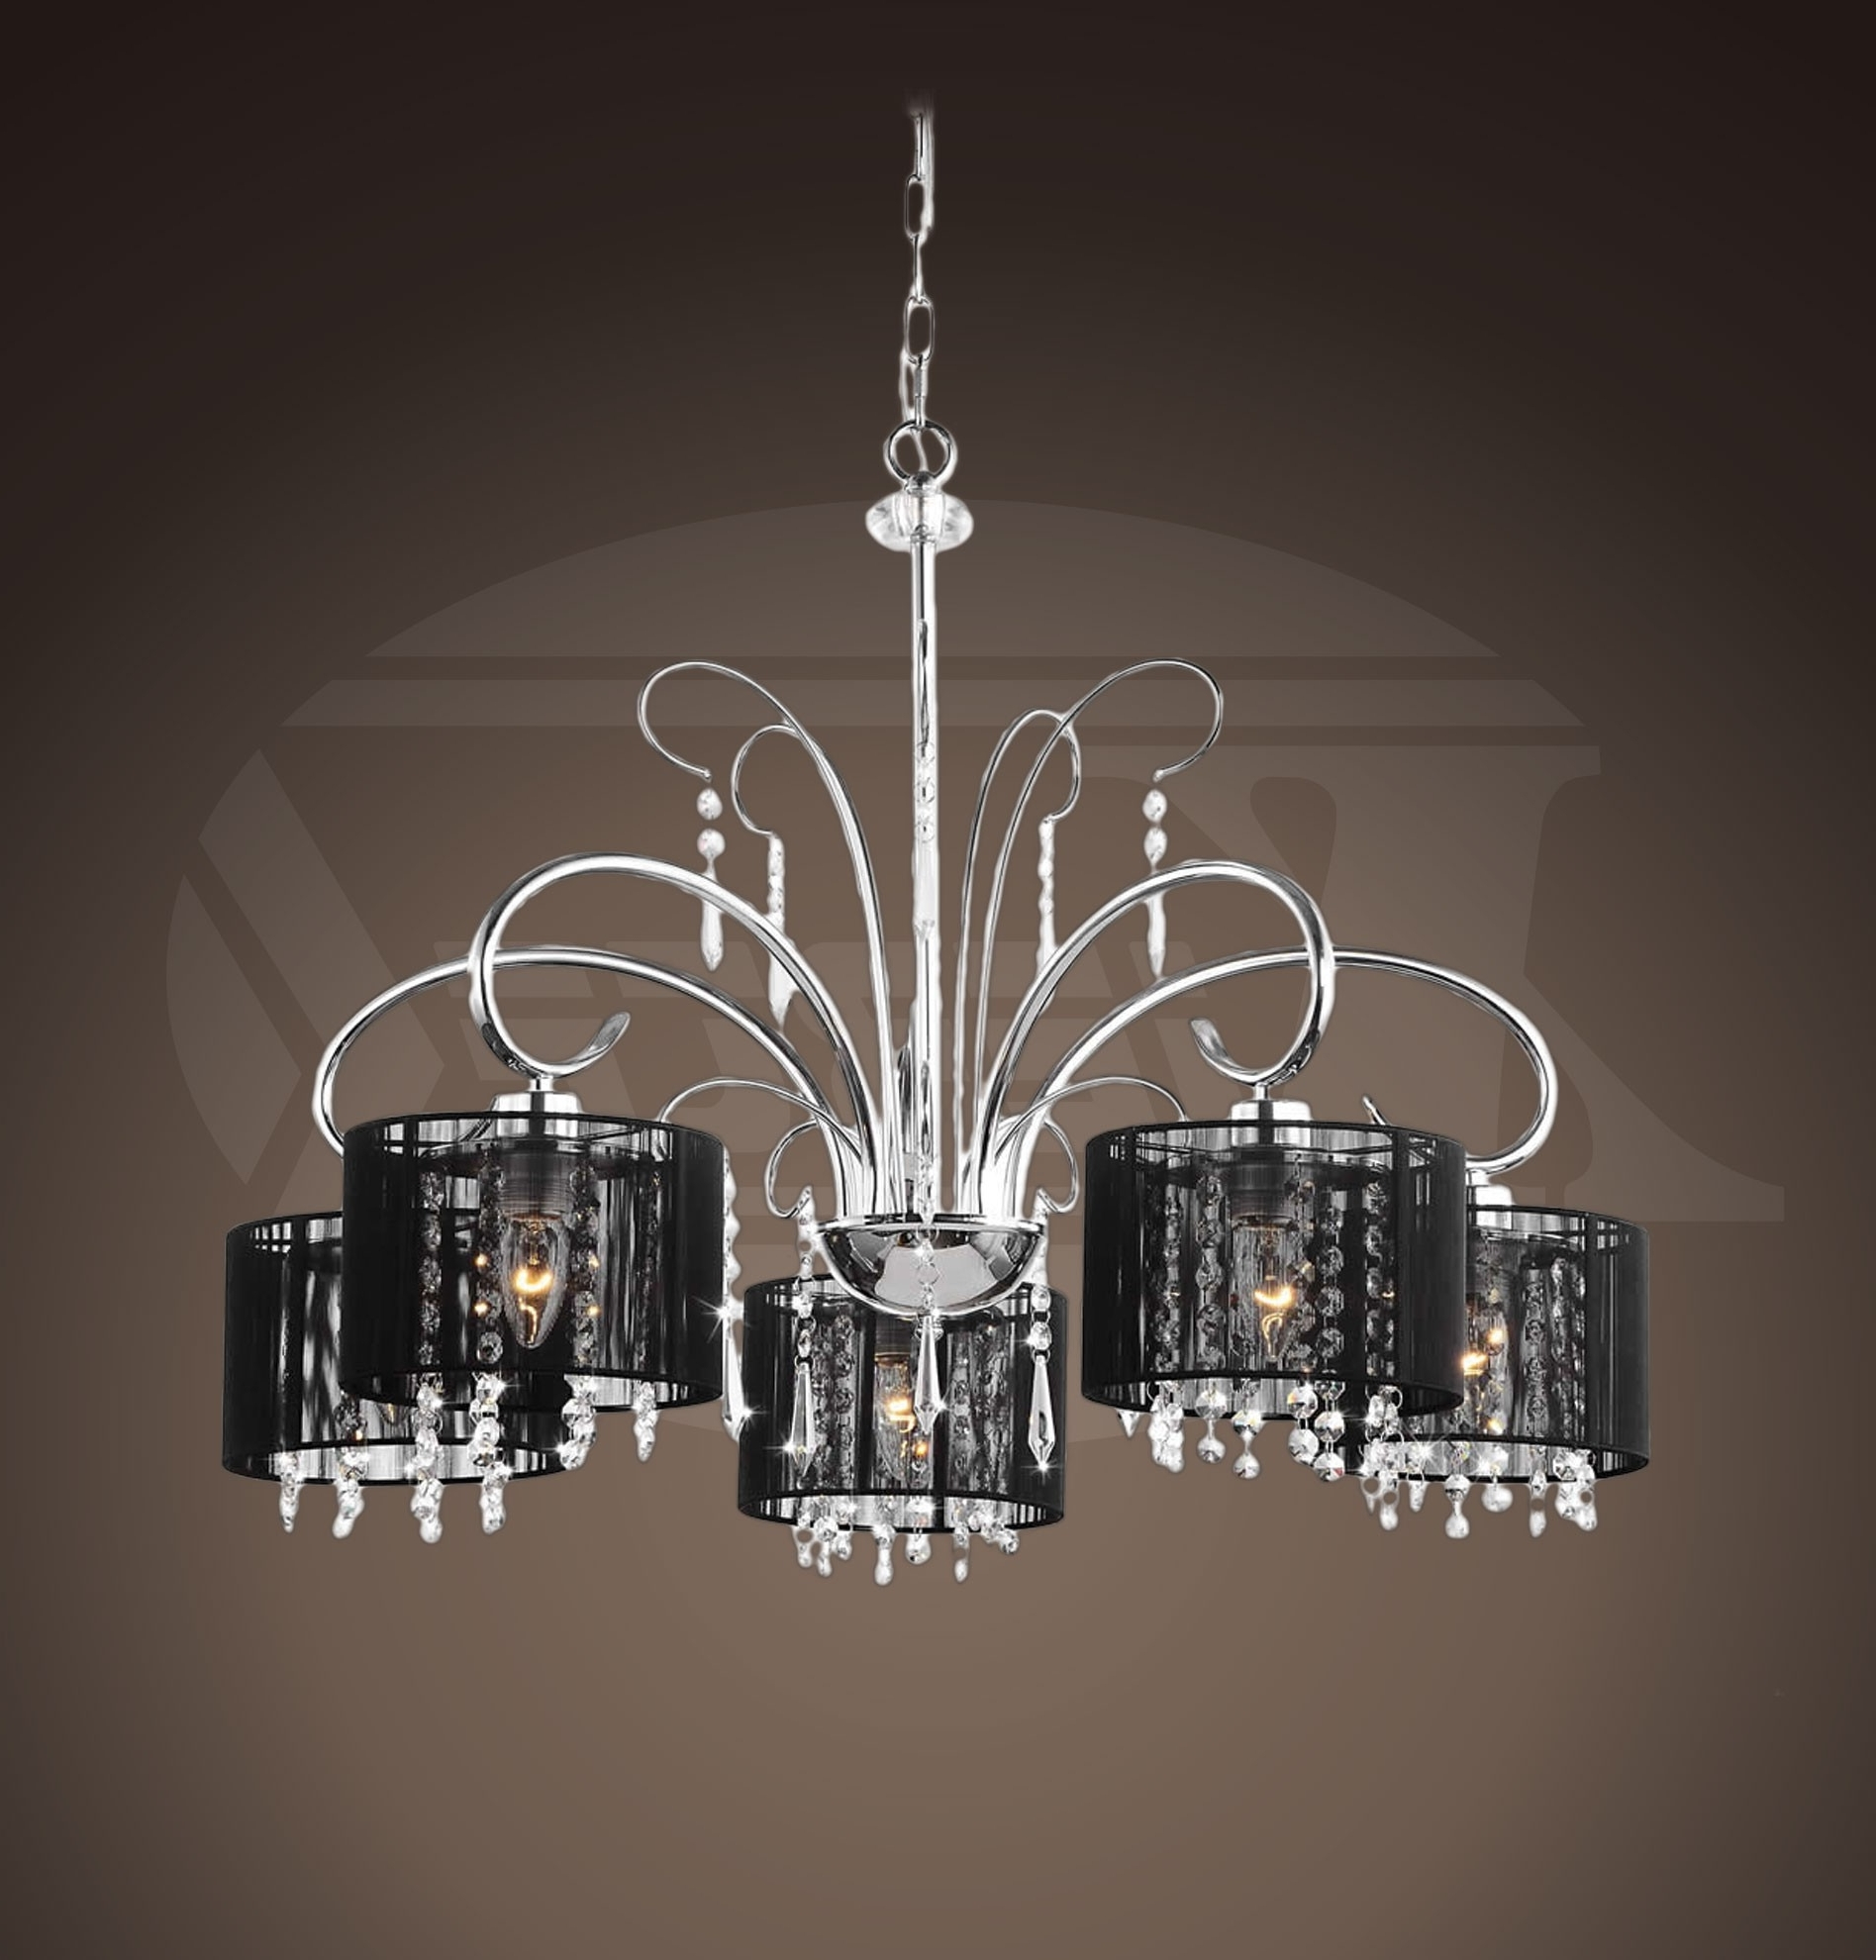 """Aegean Black Shade 5 Light Chrome Chandelier (25.5""""wx64""""h For Well Known Black Chandeliers With Shades (Gallery 2 of 20)"""